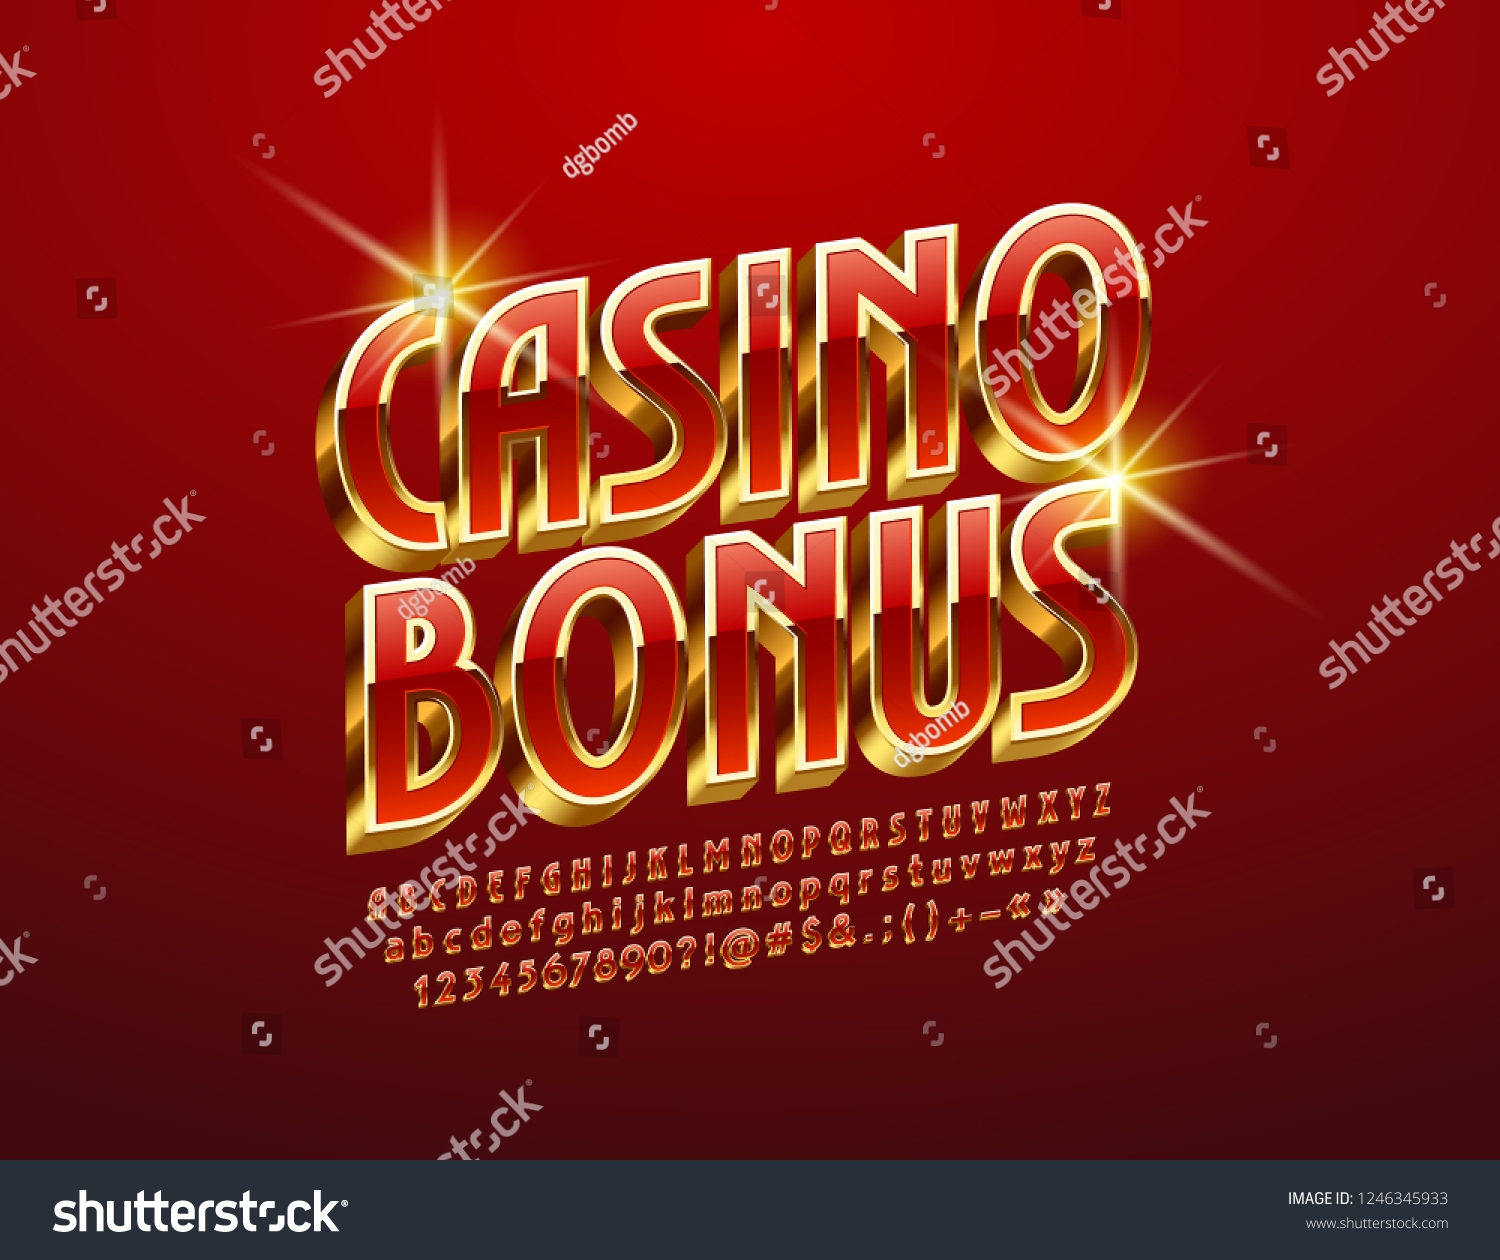 180 free casino spins at Casino.com